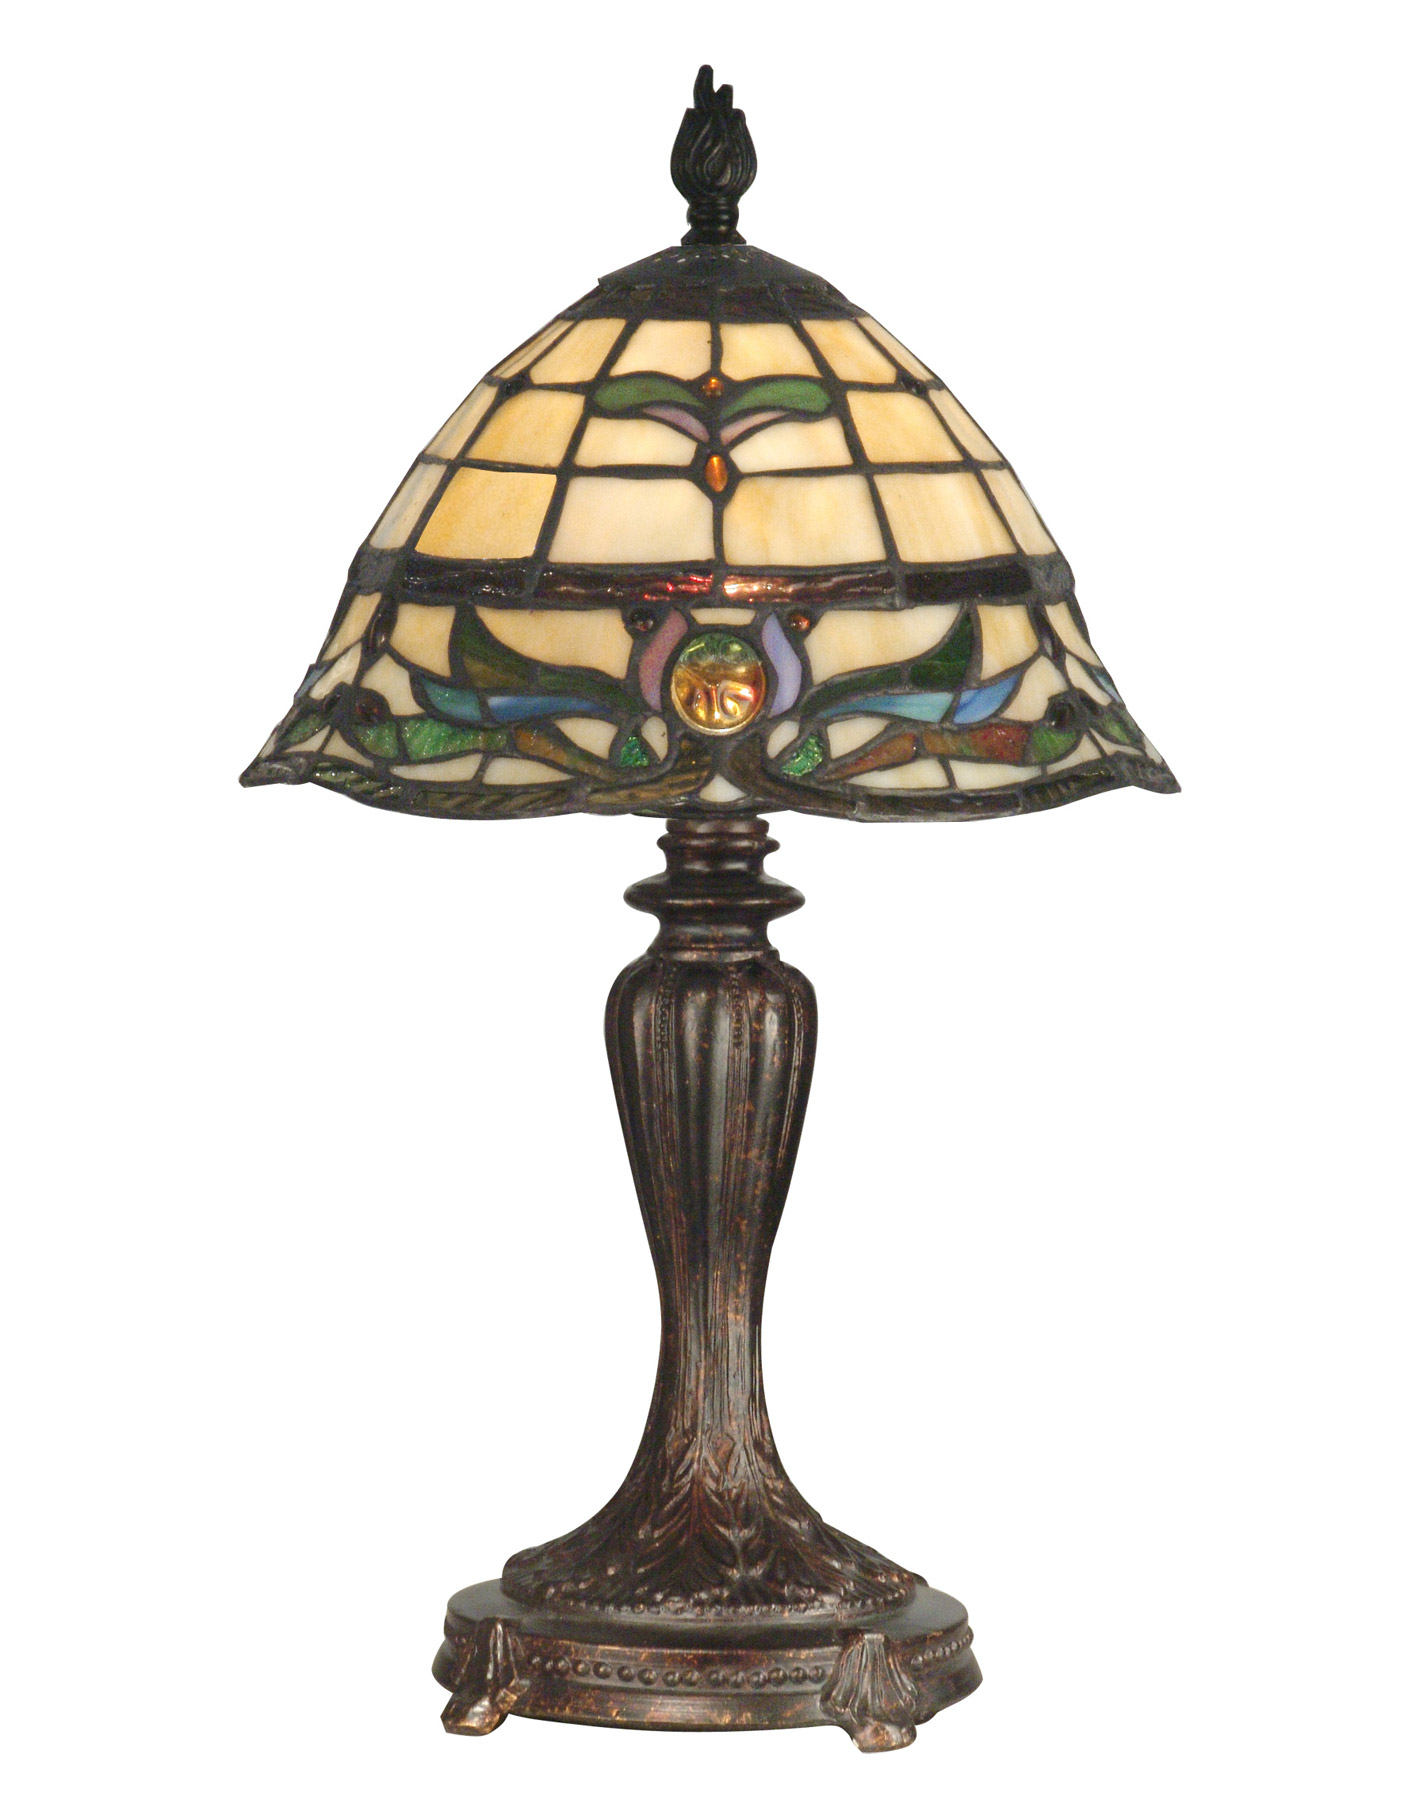 Dale Tiffany Tt10087 Tiffany Accent Lamp